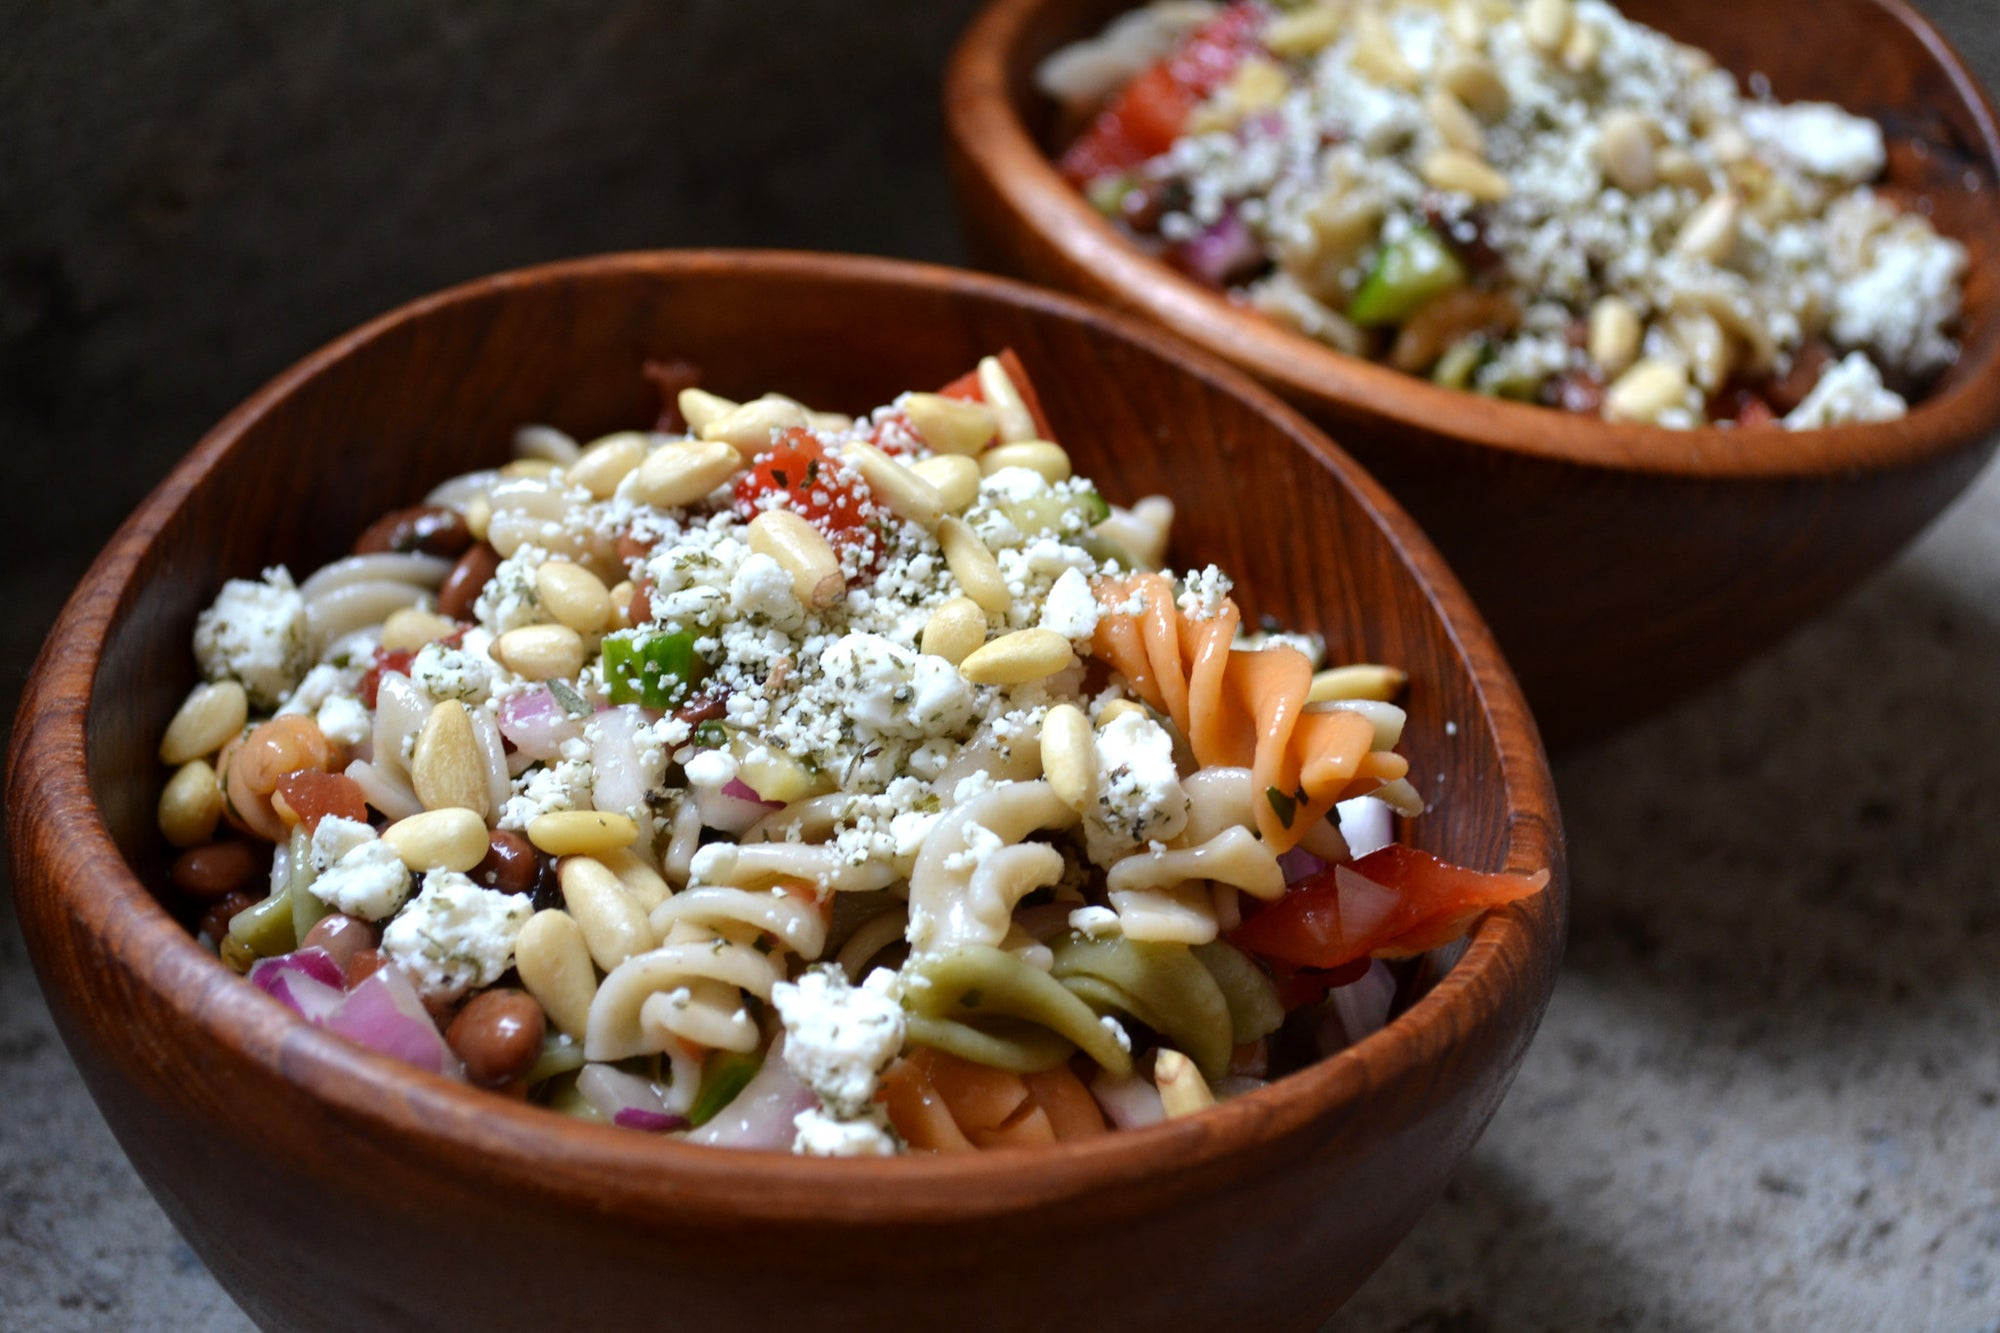 Gluten Free Mediterranean Pasta Salad with Red Wine & Lemon Dressing